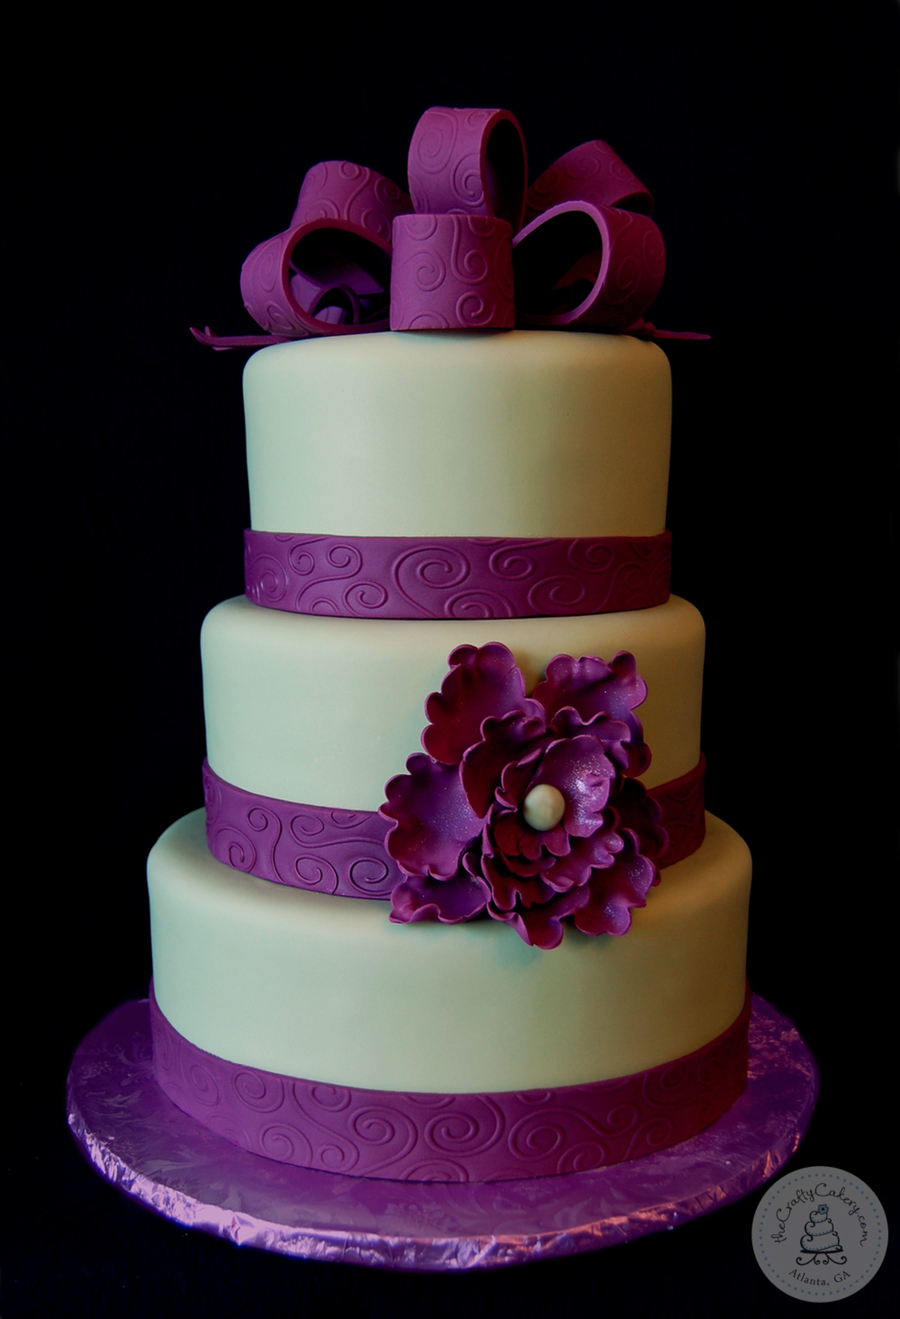 Engagement Party Cake With Fondant Scroll Ribbon And Gumpaste Ruffled Flower Colors Incorporated From The Wedding Sage Green And Plum on Cake Central